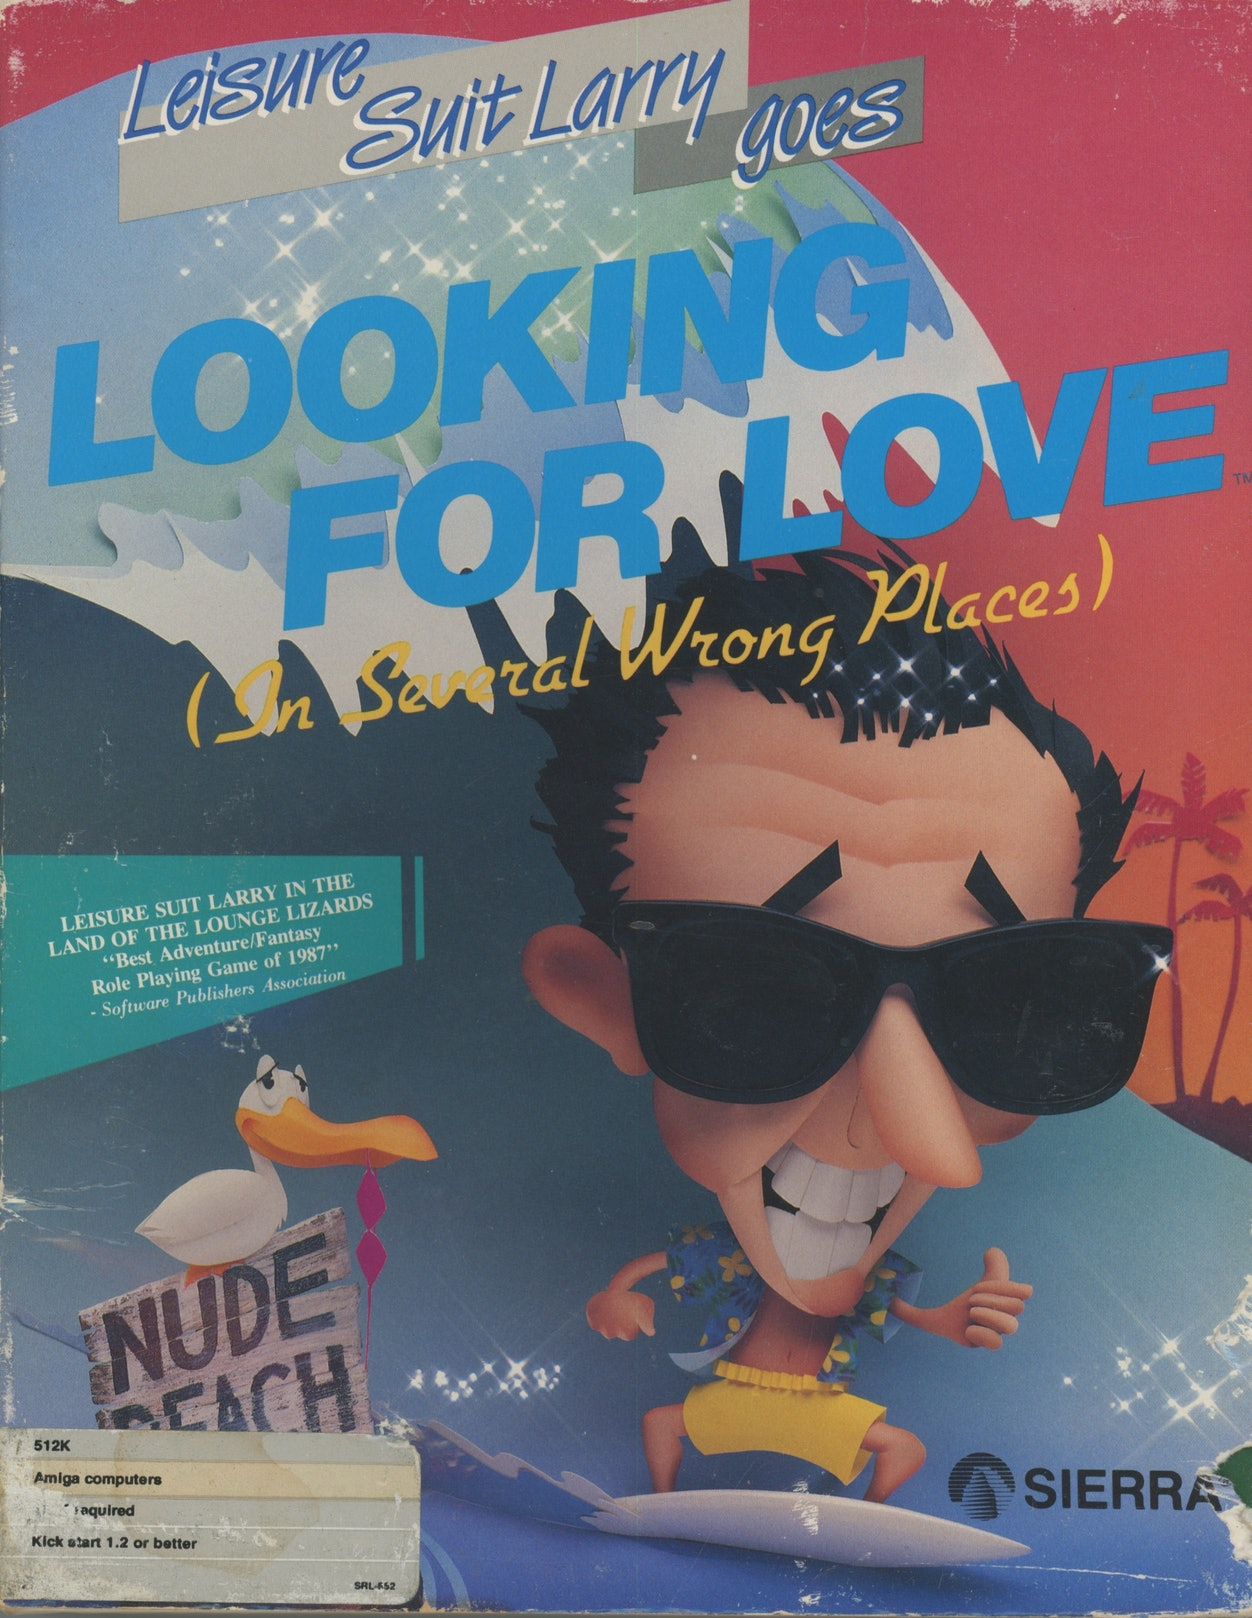 Leisure Suit Larry 2: Larry Goes Looking for Love (In Several Wrong Places)